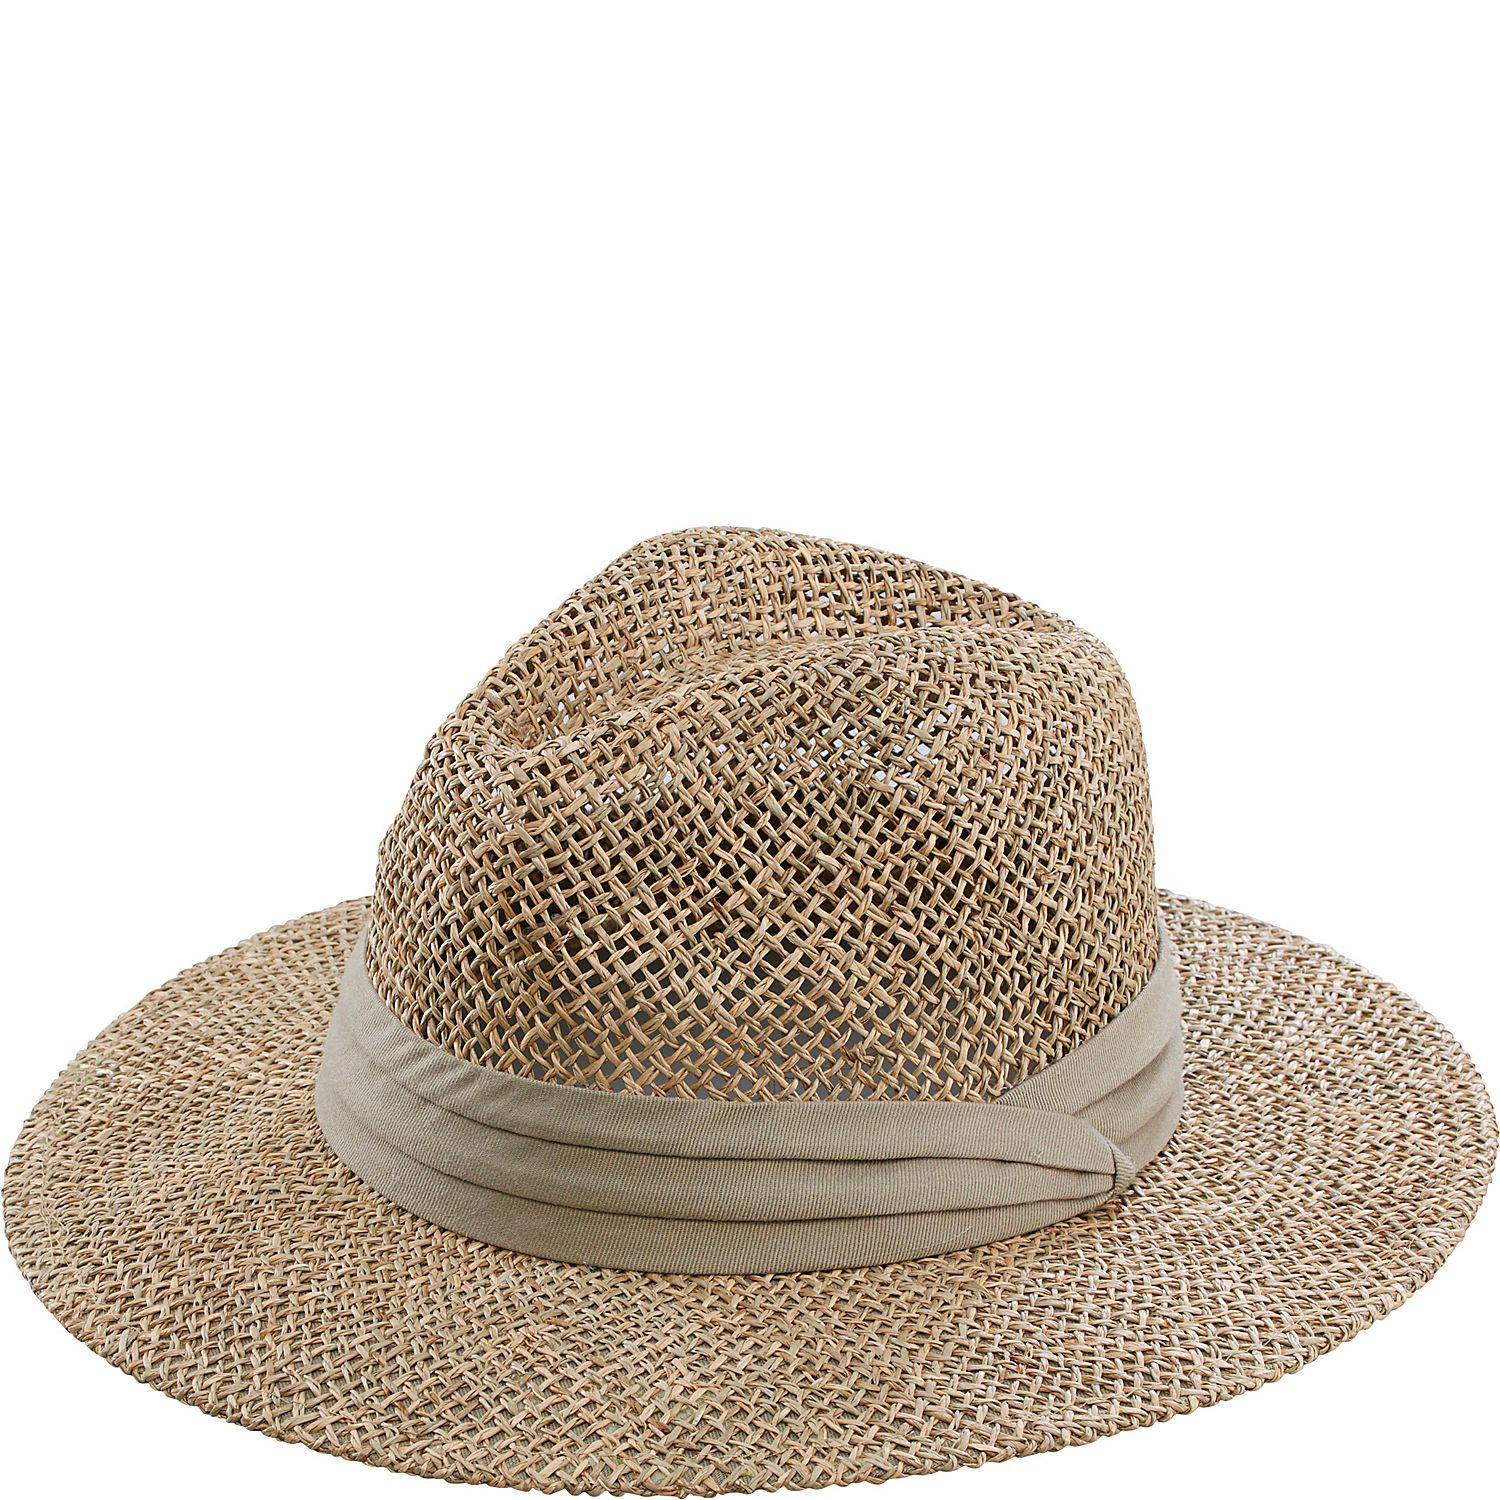 5330ea2793ecf San Diego Hat Seagrass Panama Fedora with Cloth Band - eBags.com ...